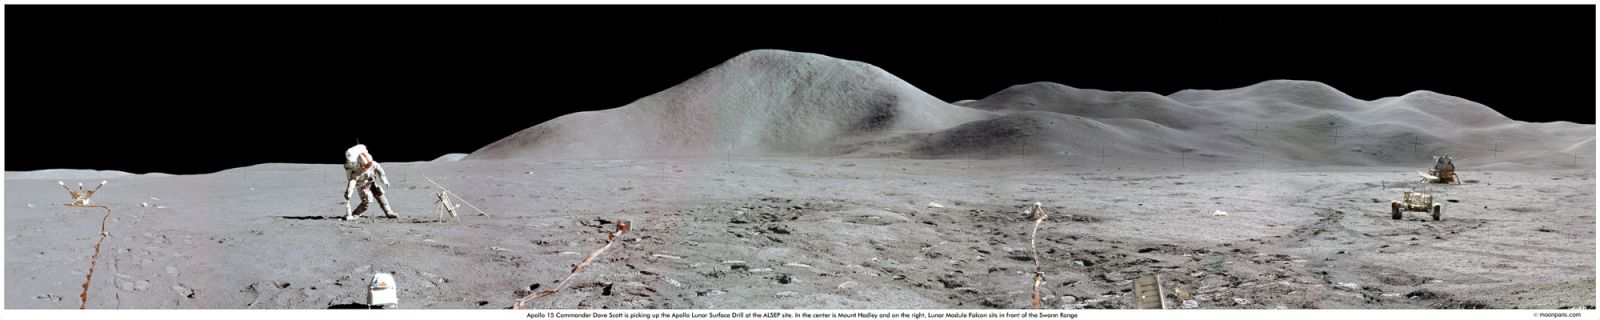 Apollo 15 panorama. Photo Credit: NASA